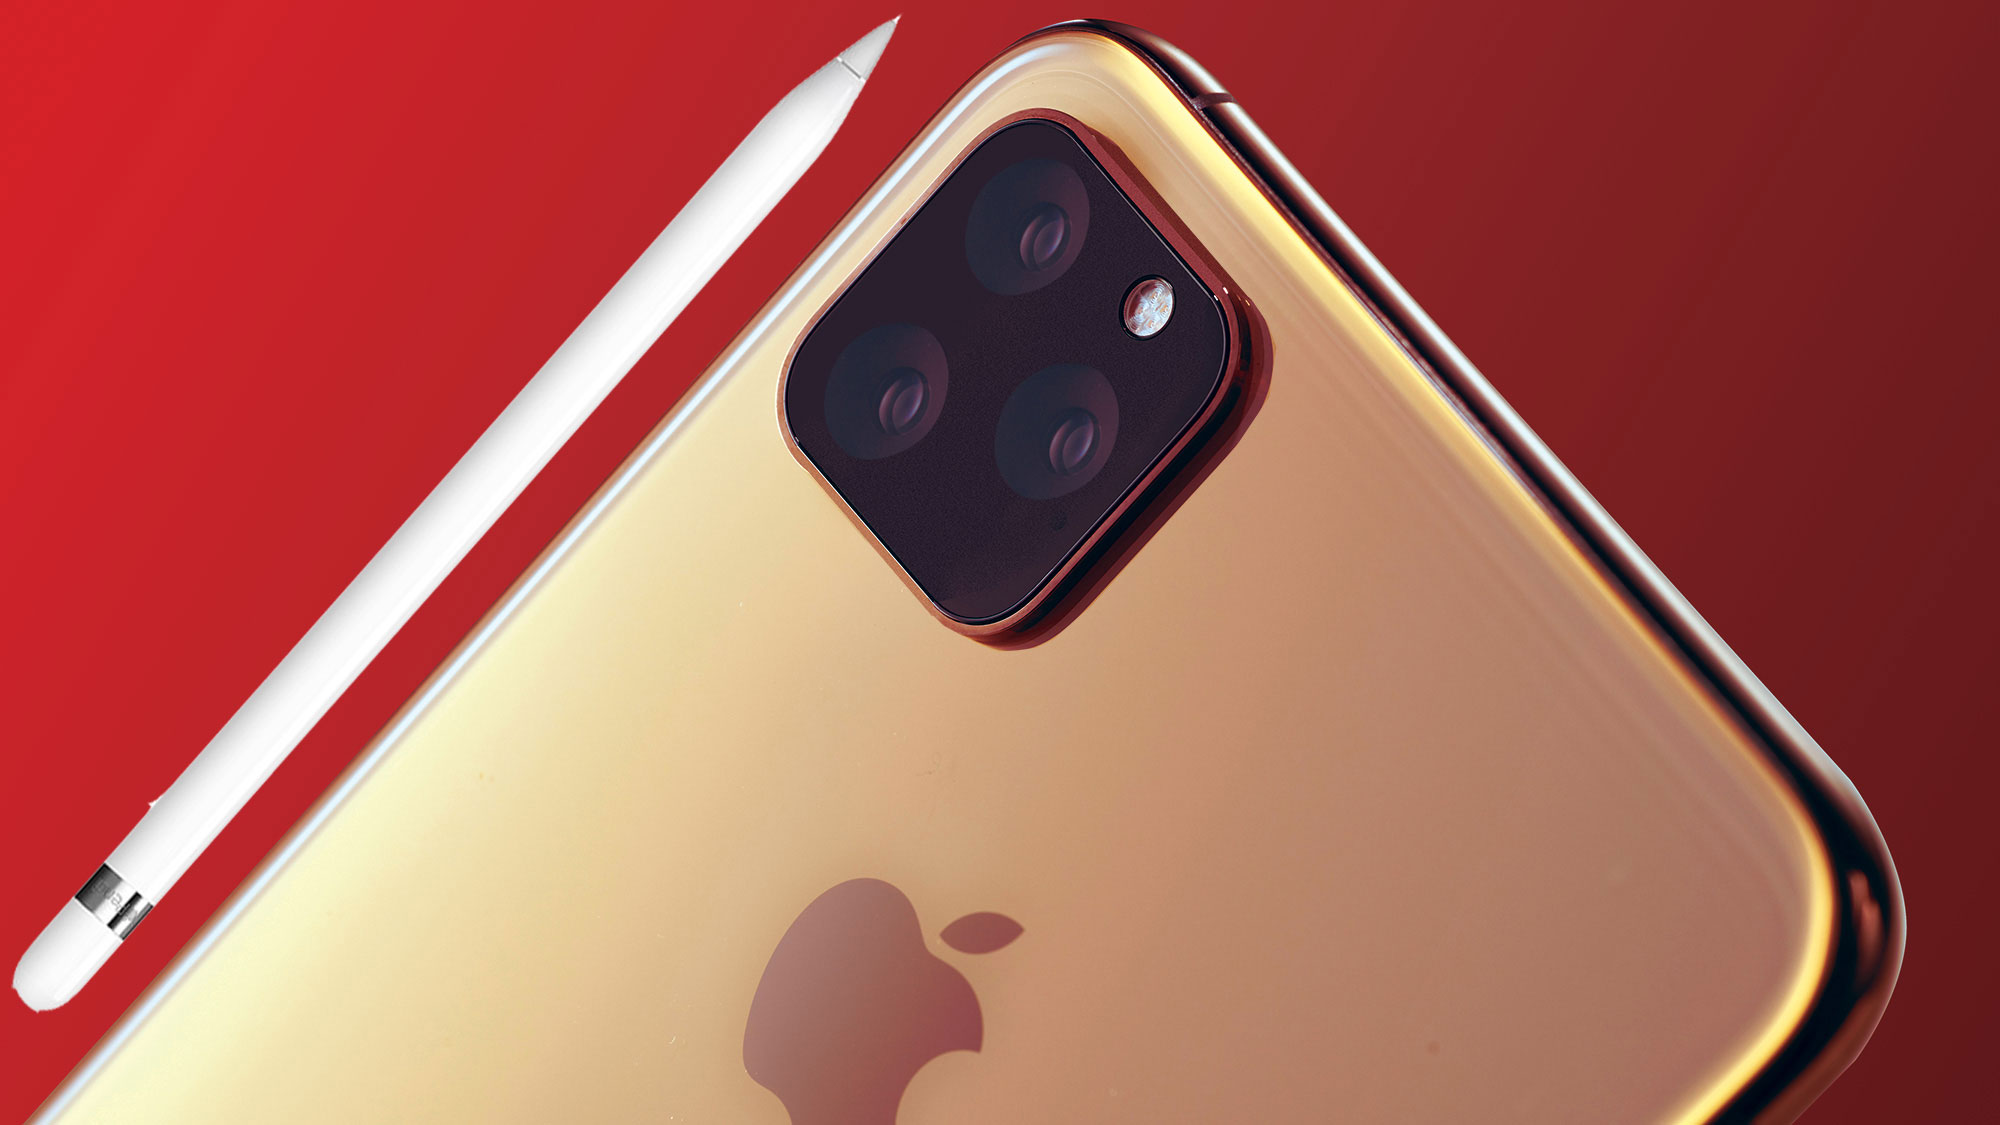 The best iPhone 11 rumored features, ranked